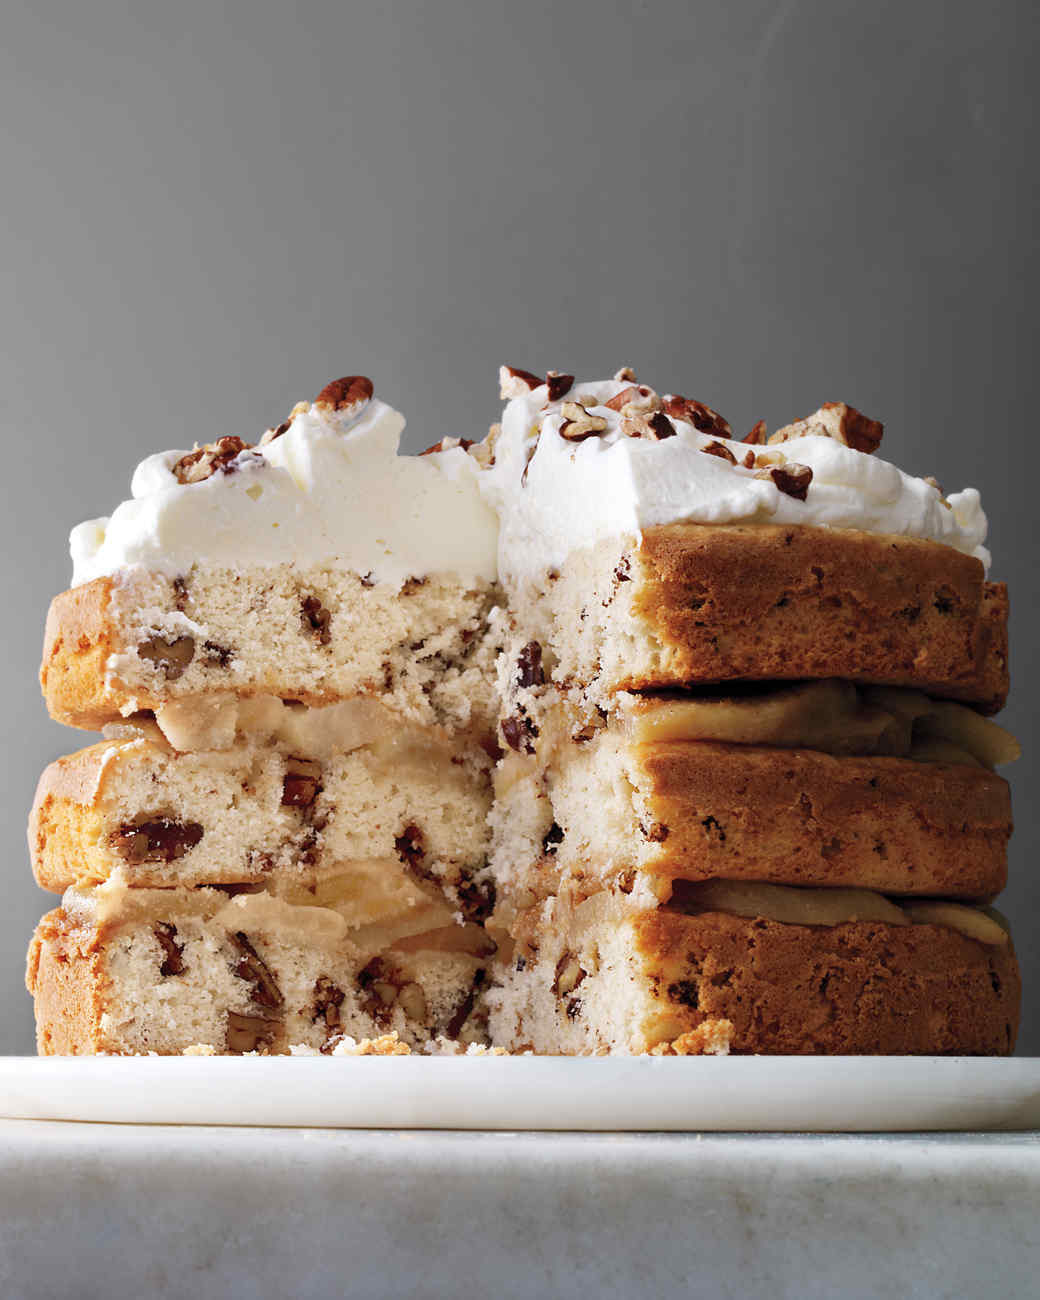 Layered Birthday Cake Recipes  Our Best Layer Cake Recipes